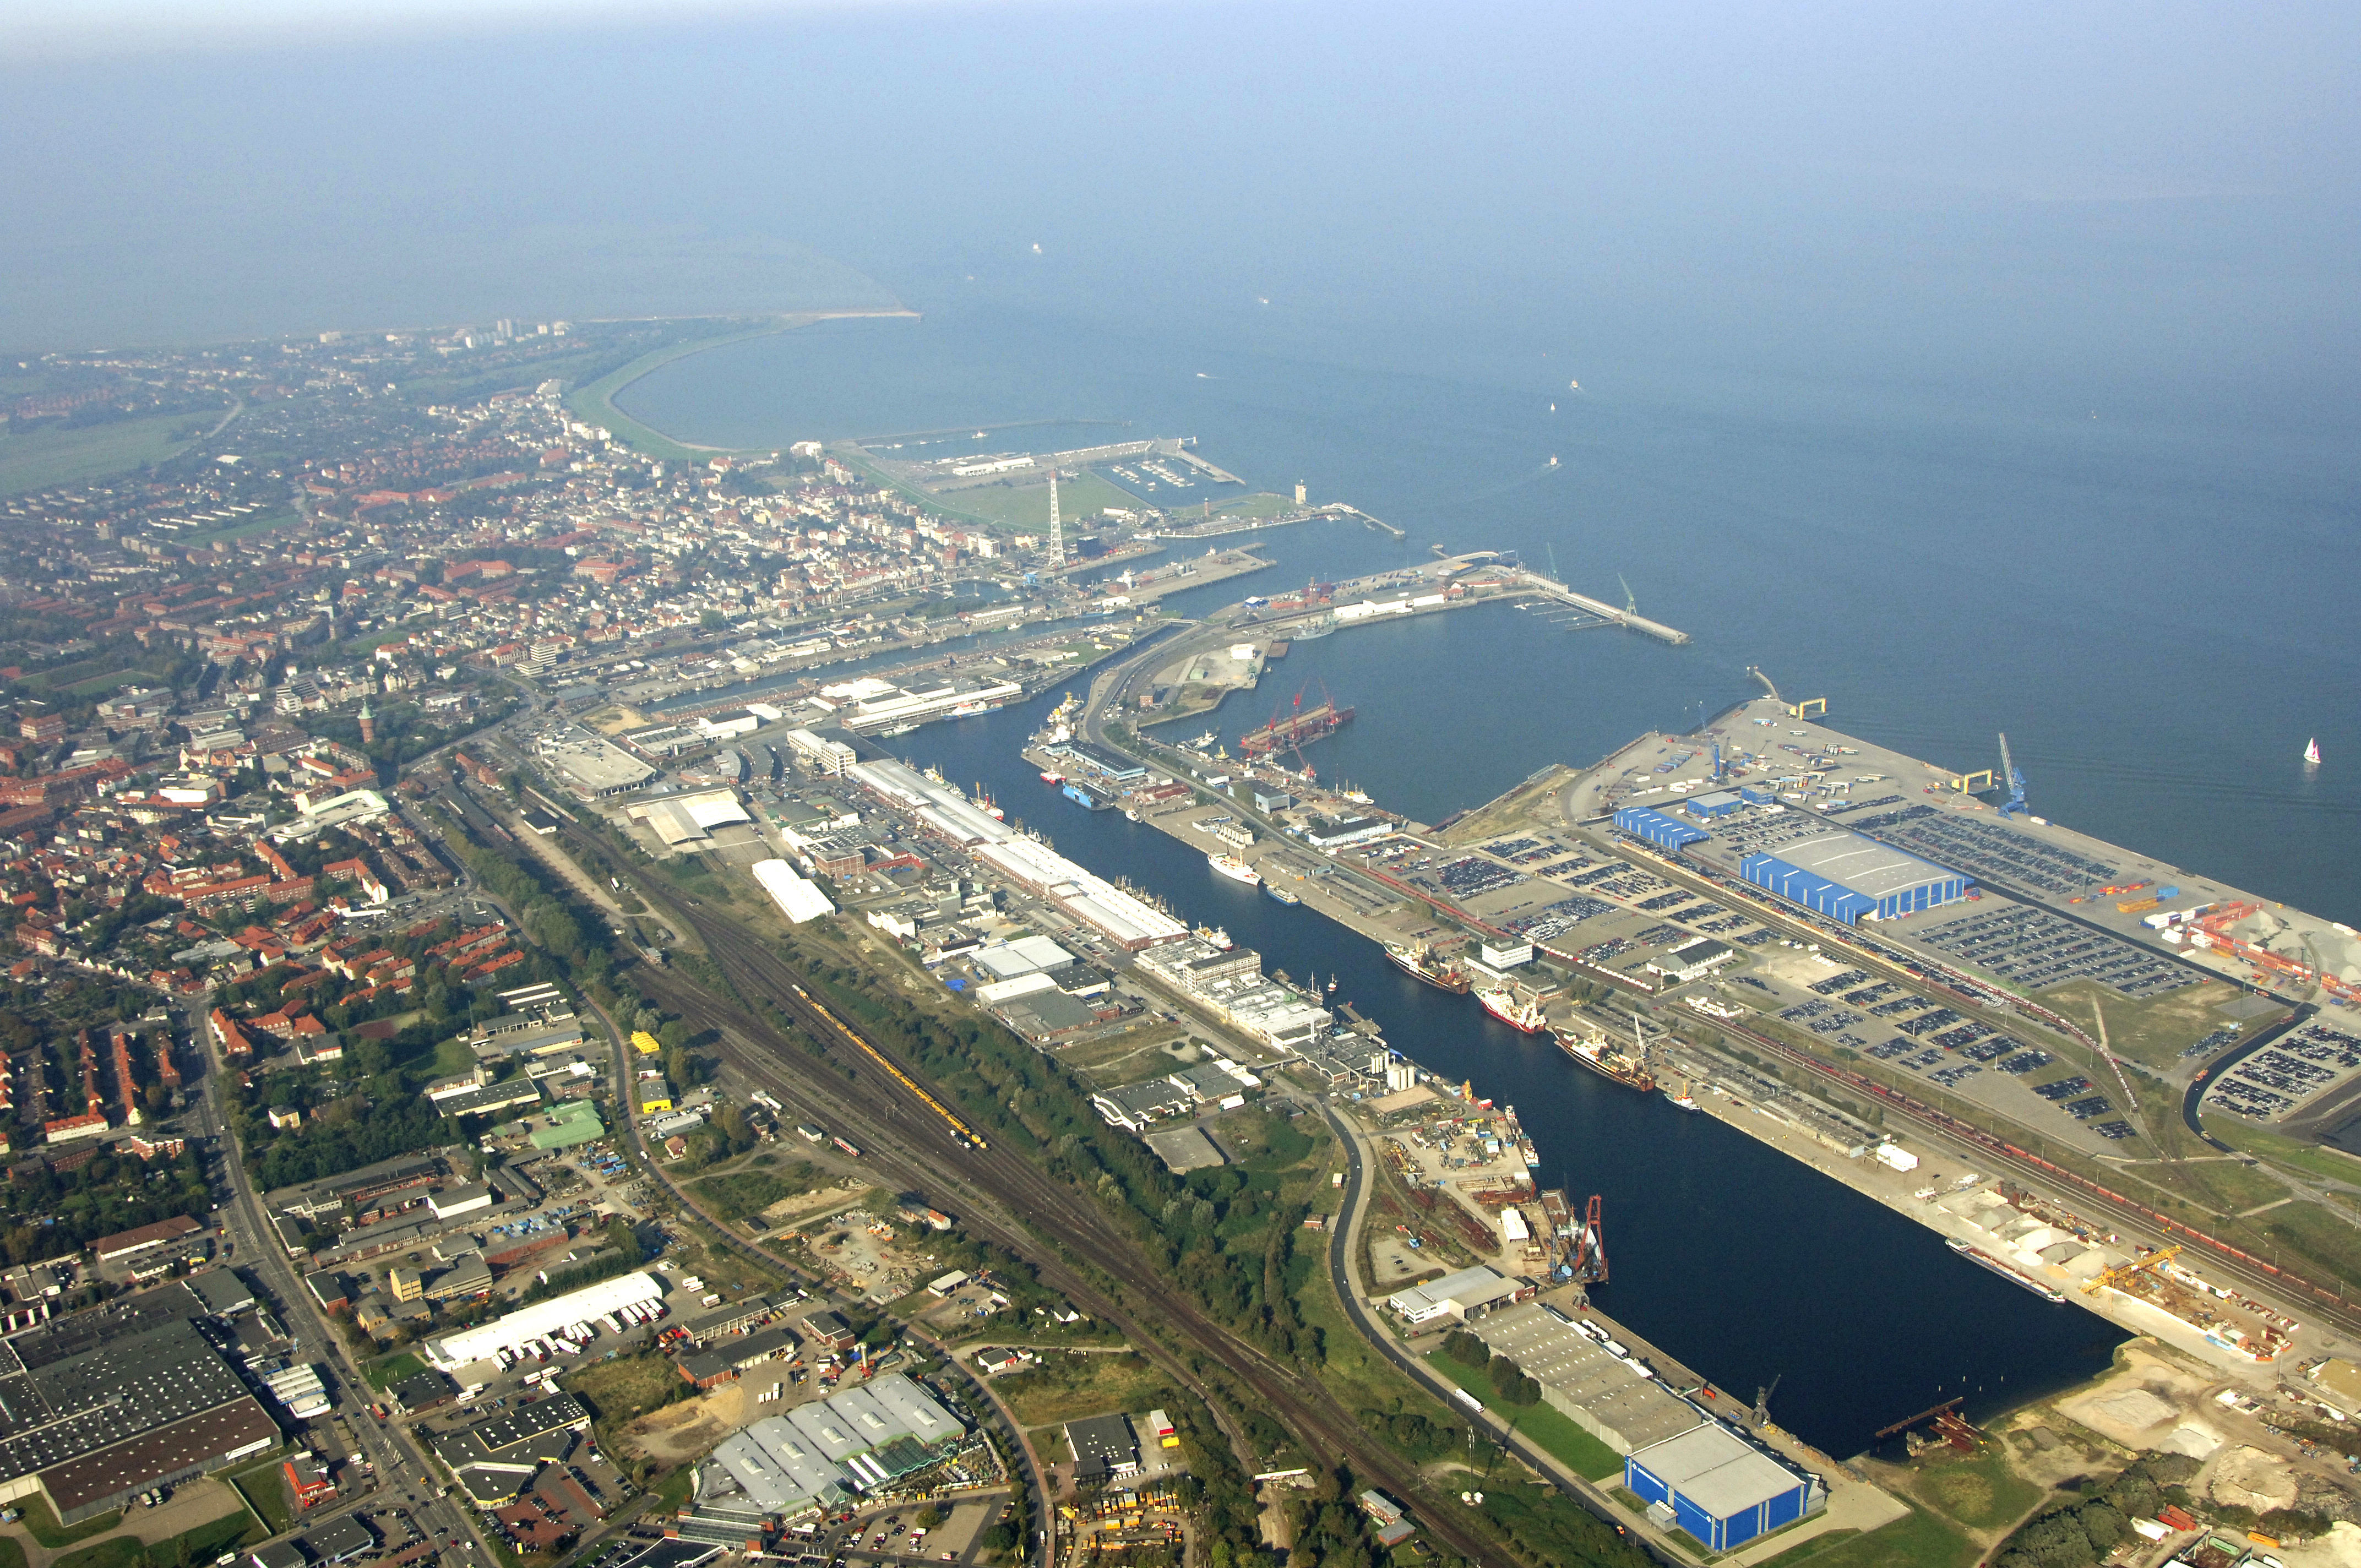 Cuxhaven Harbor in Cuxhaven, Lower Saxony, Germany